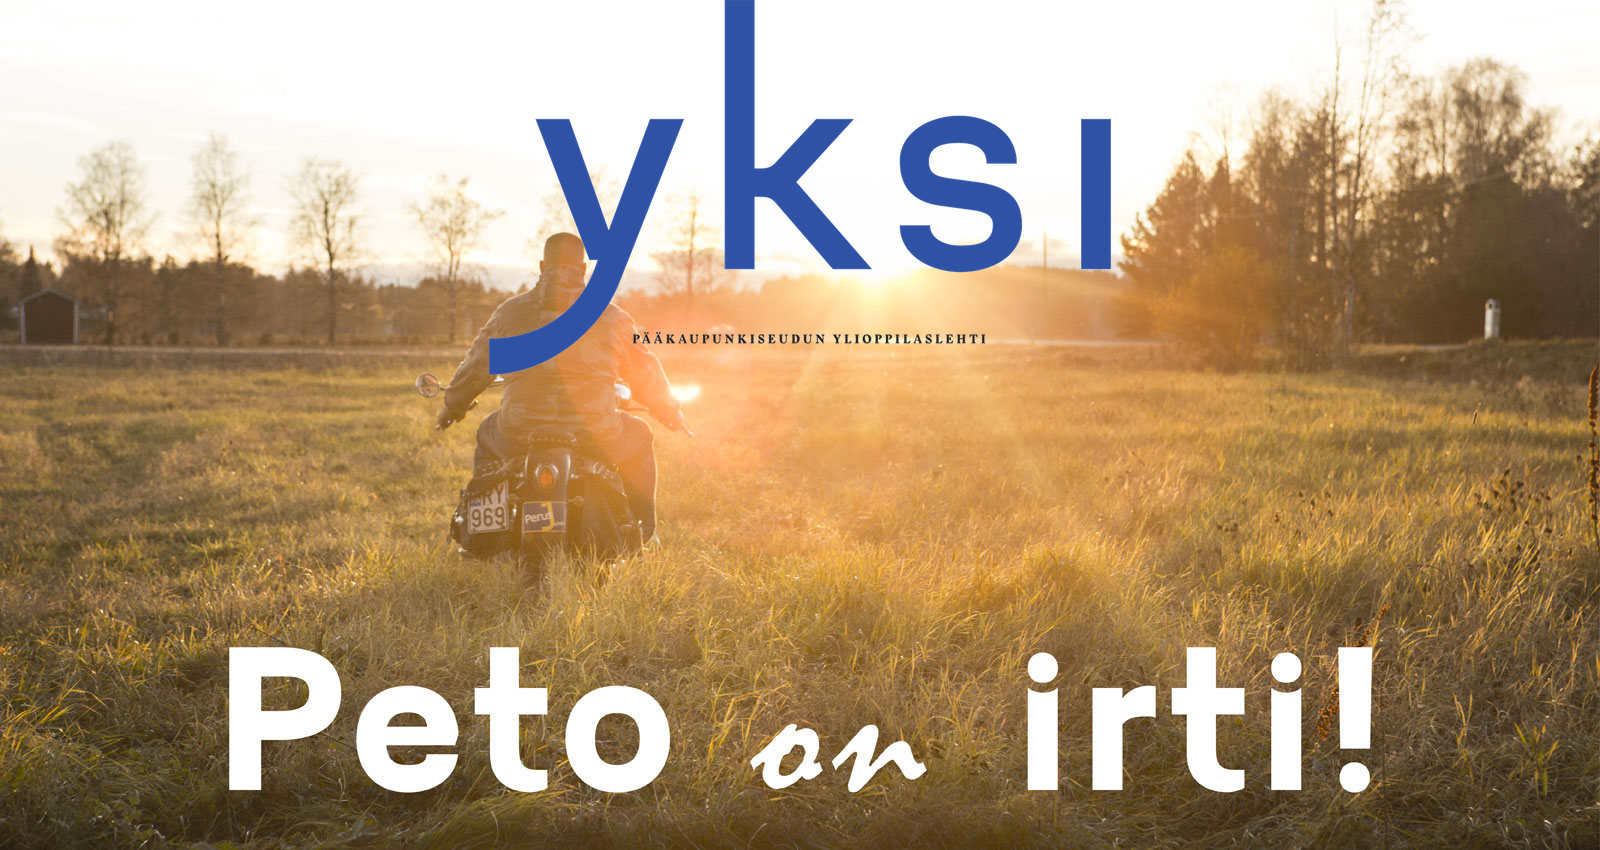 yksi main screen shot